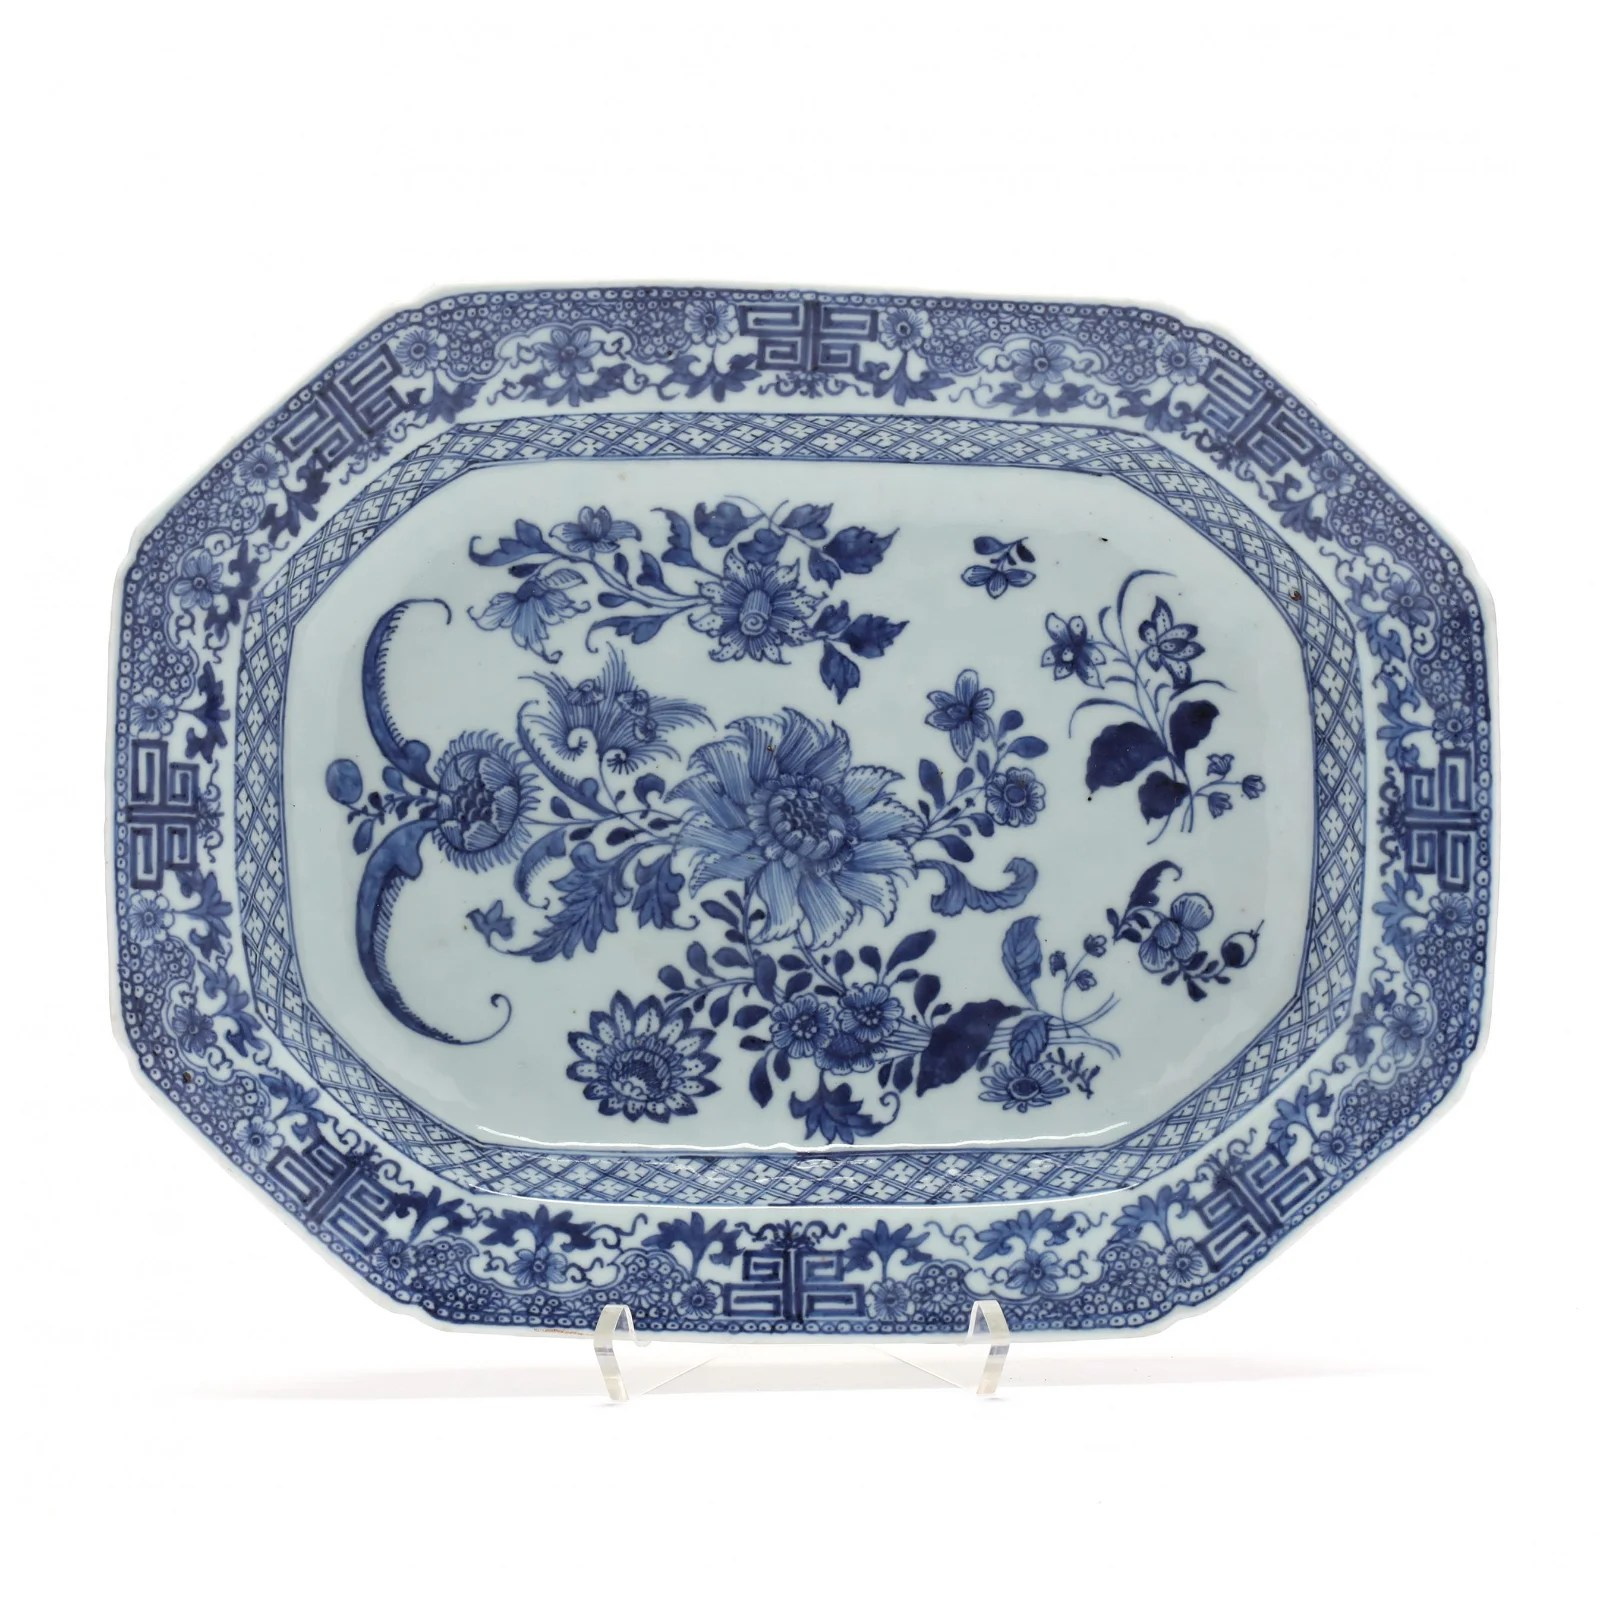 A Chinese Export Porcelain Blue and White Platter